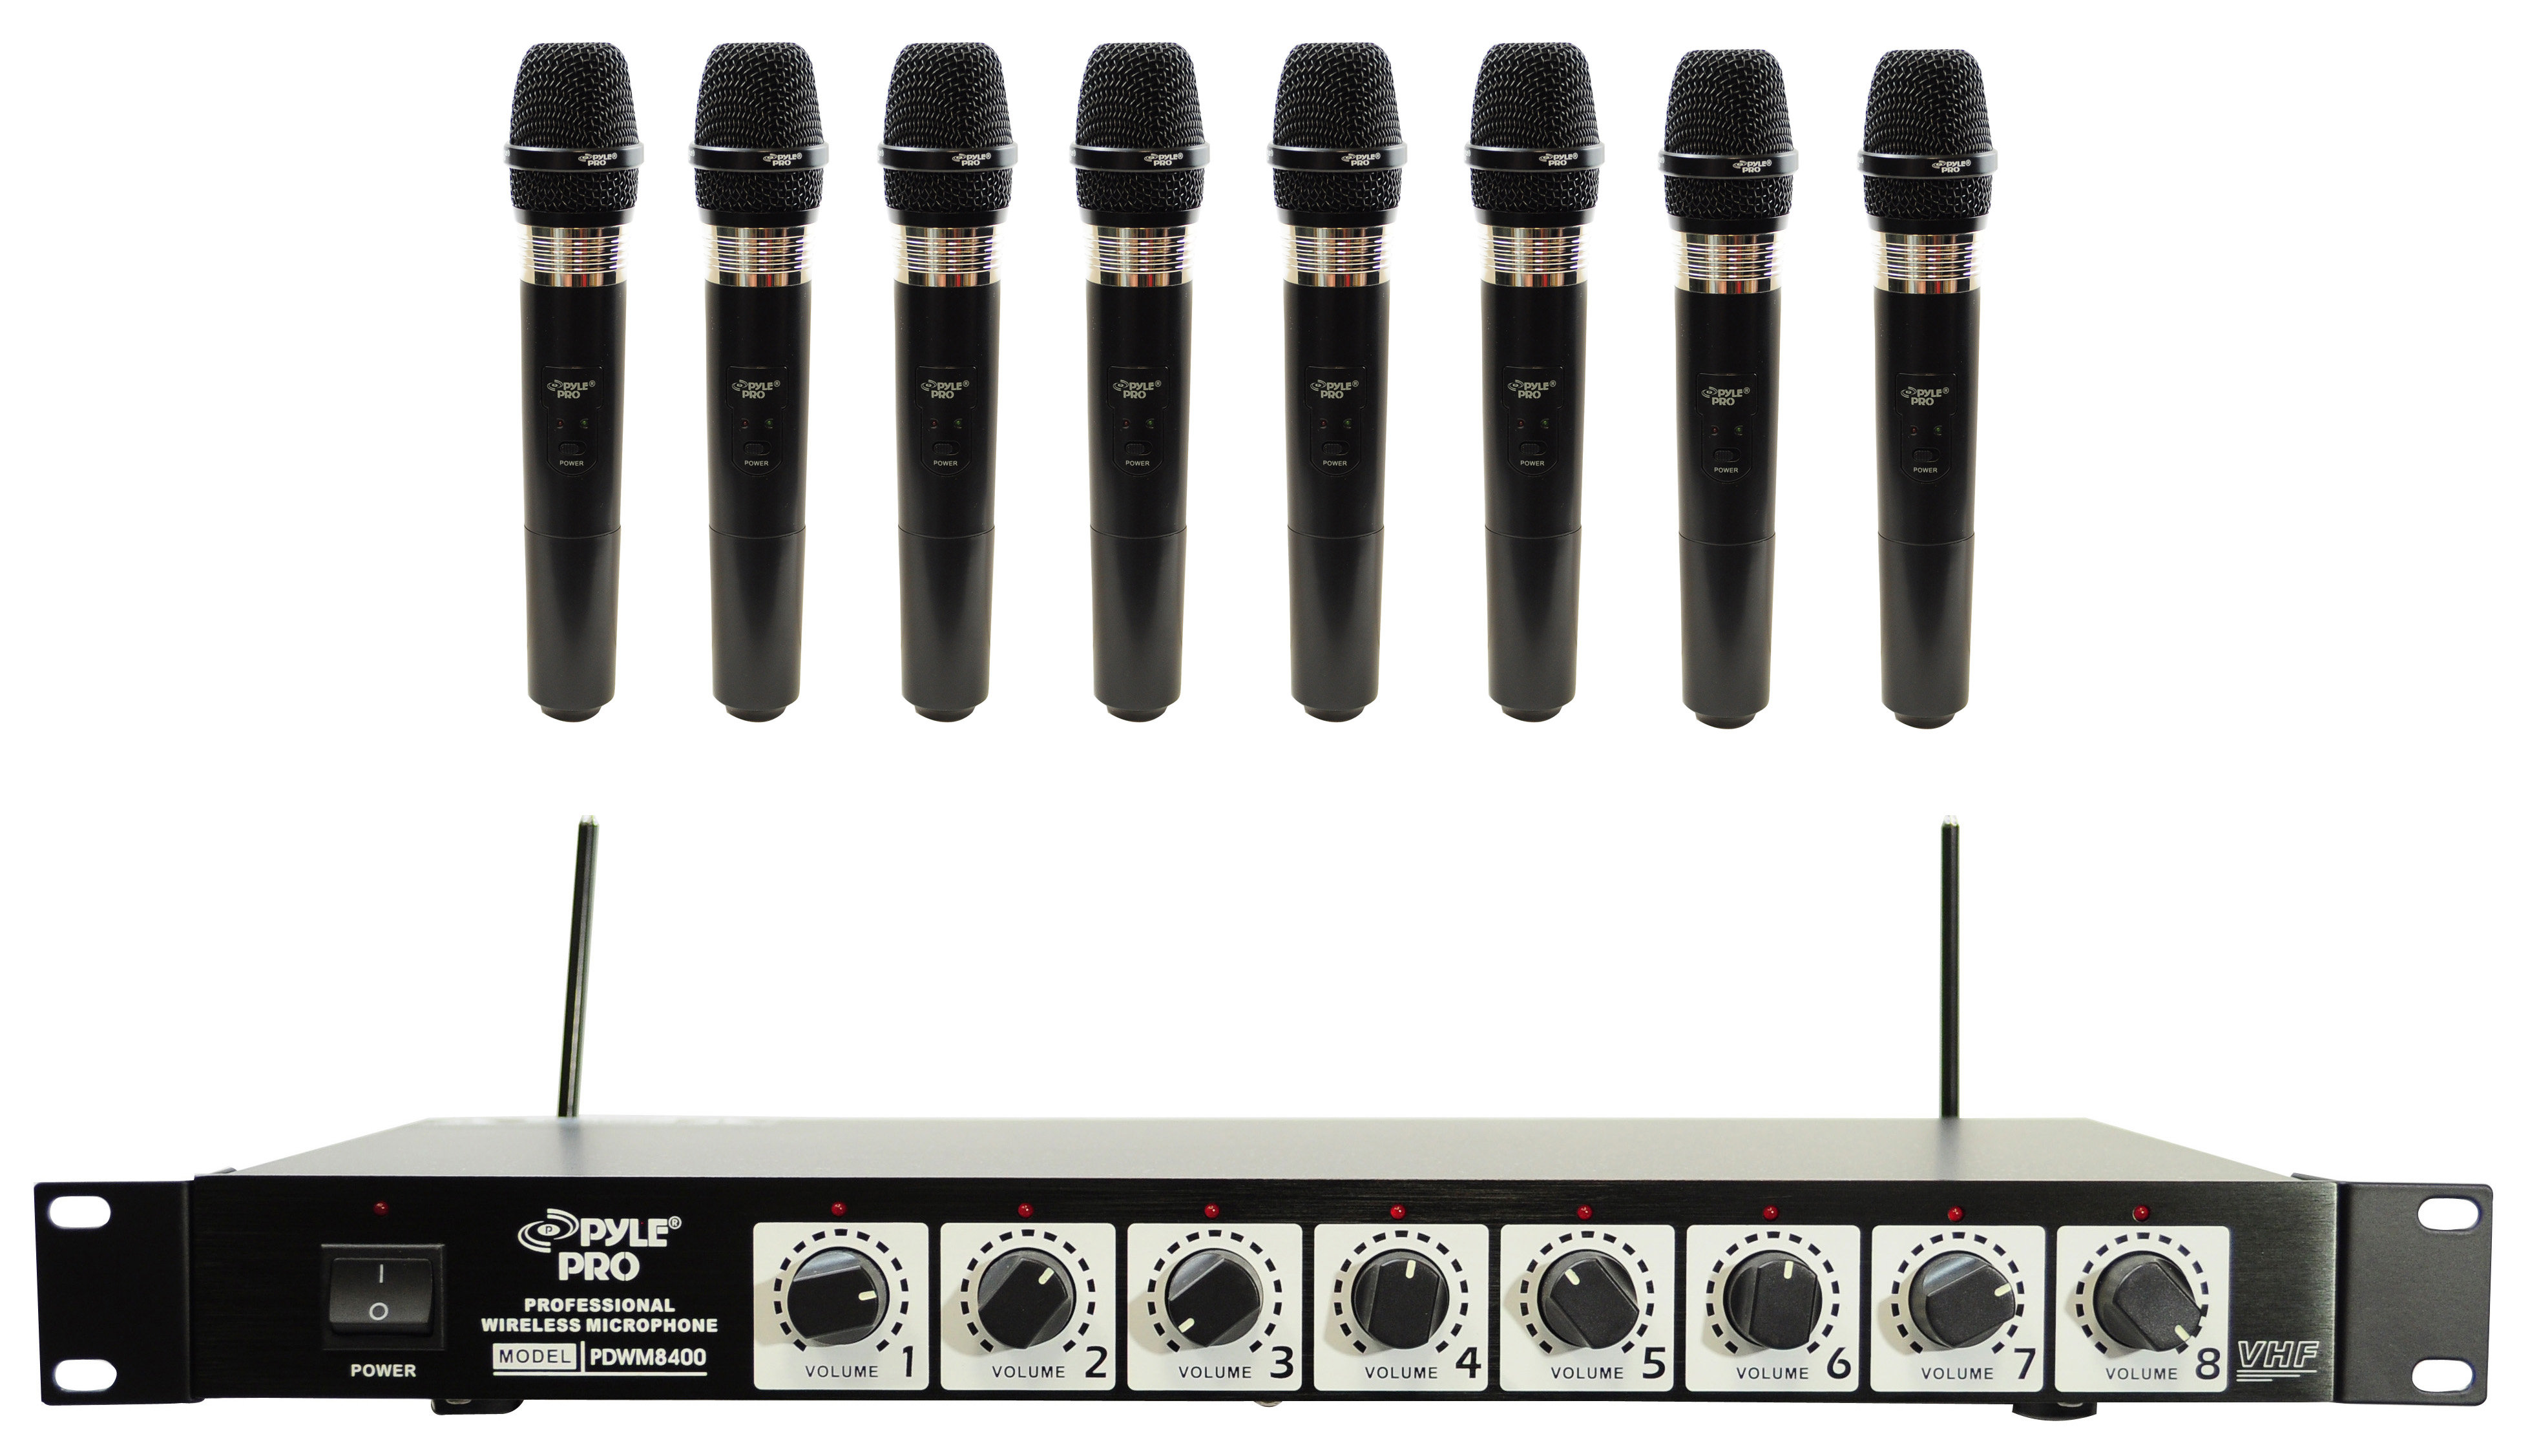 pyle pro pdwm8400 8 mic professional handheld vhf wireless microphone system. Black Bedroom Furniture Sets. Home Design Ideas